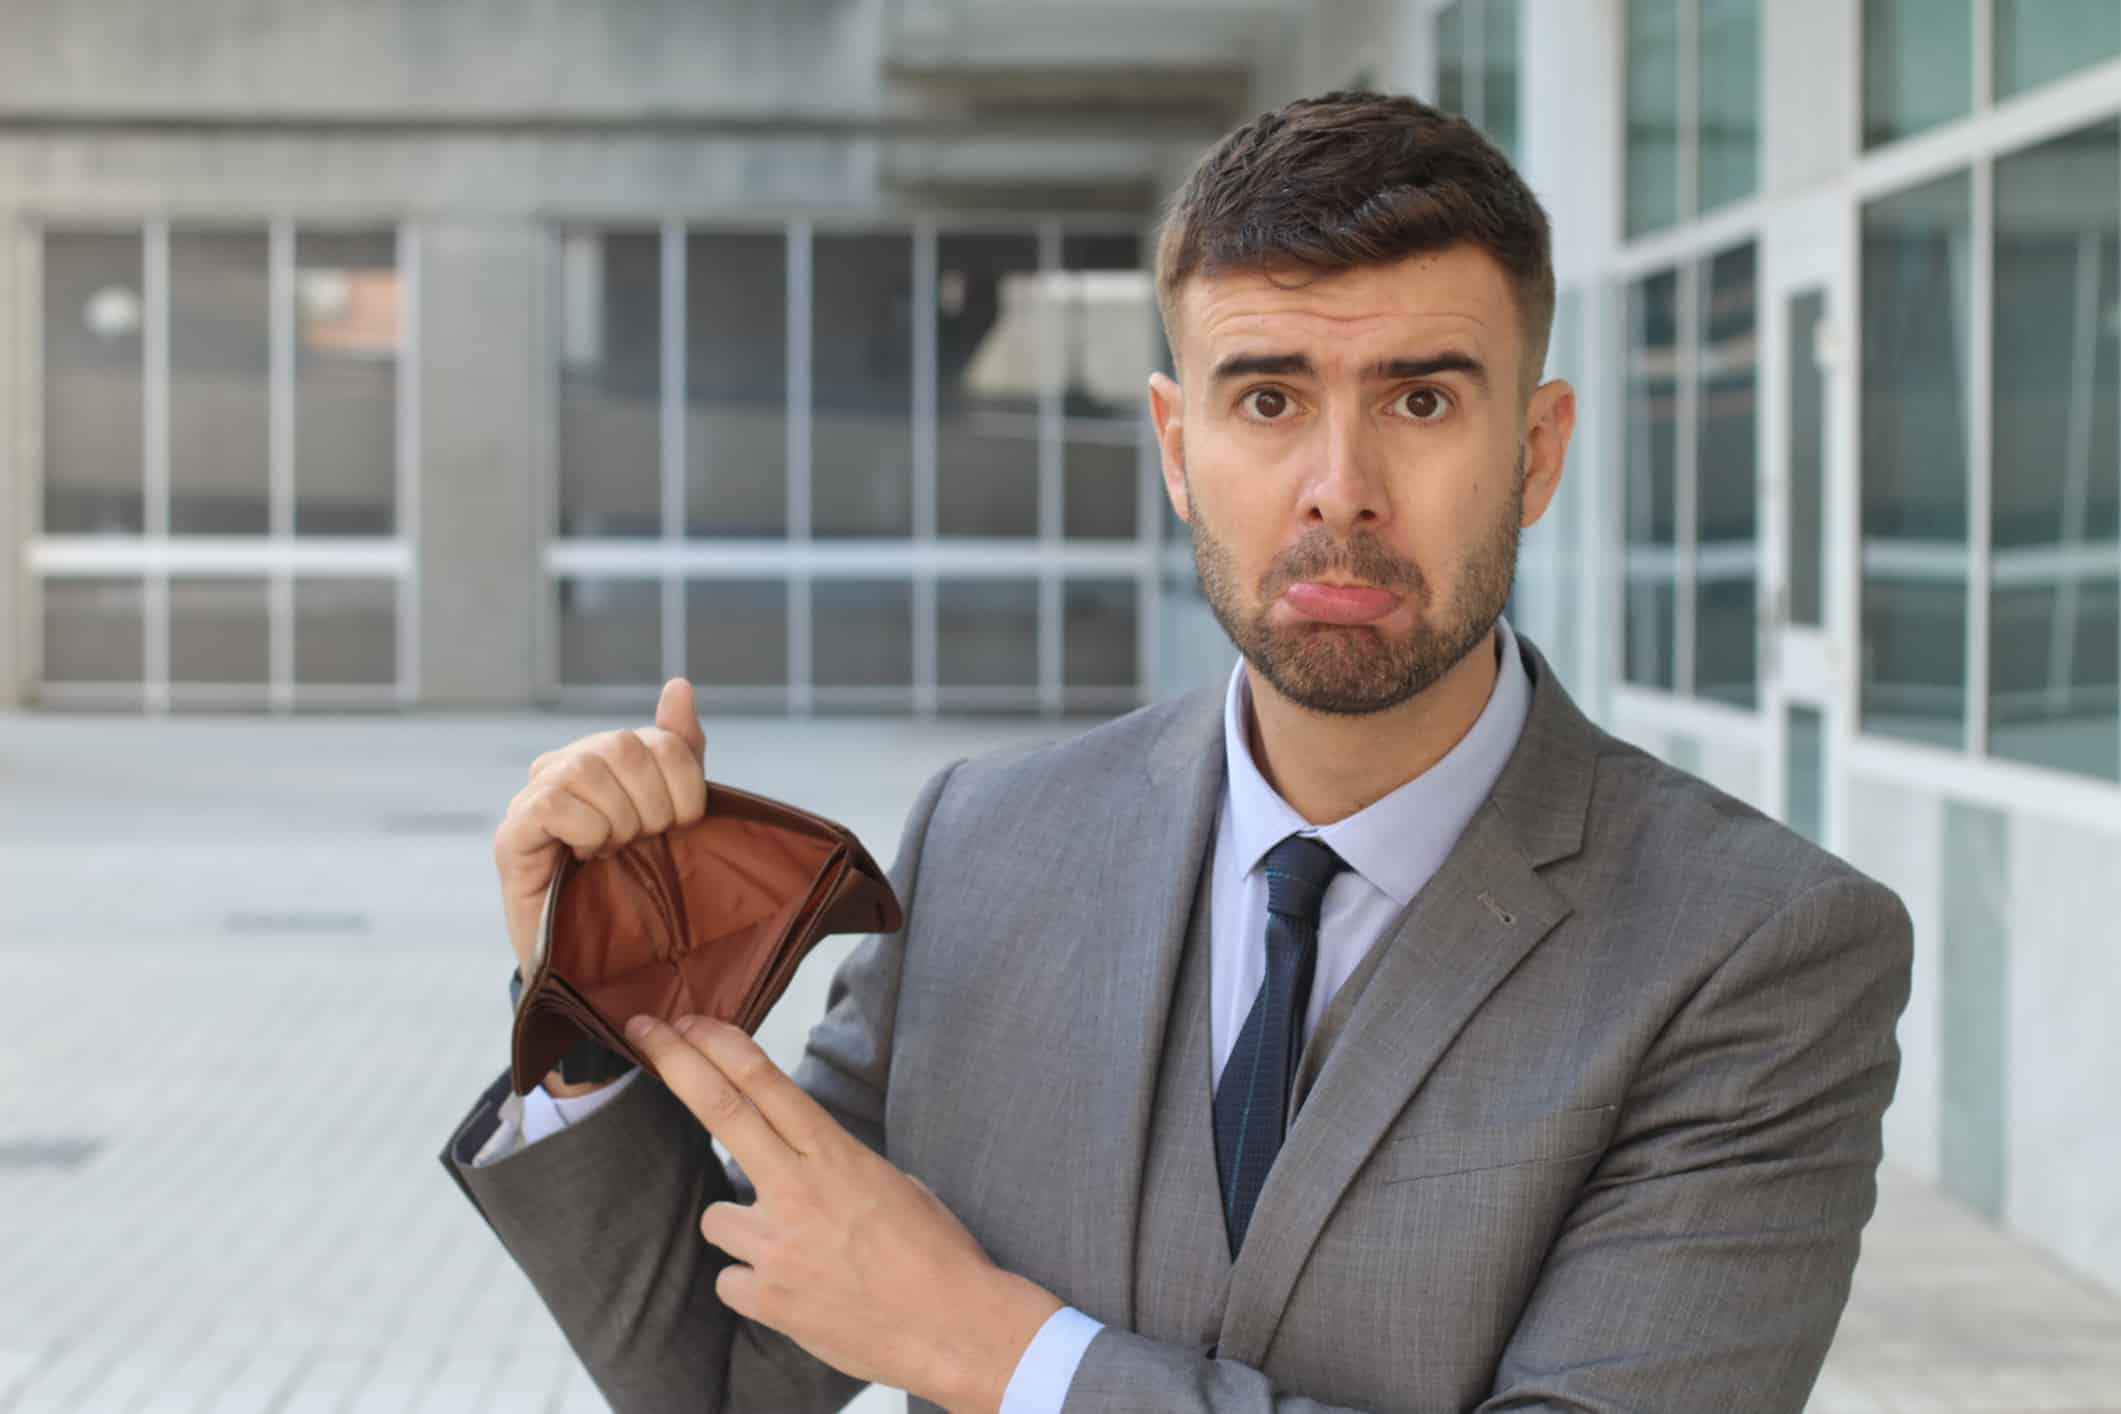 Personal Finance Experts Share Their Money Mistakes